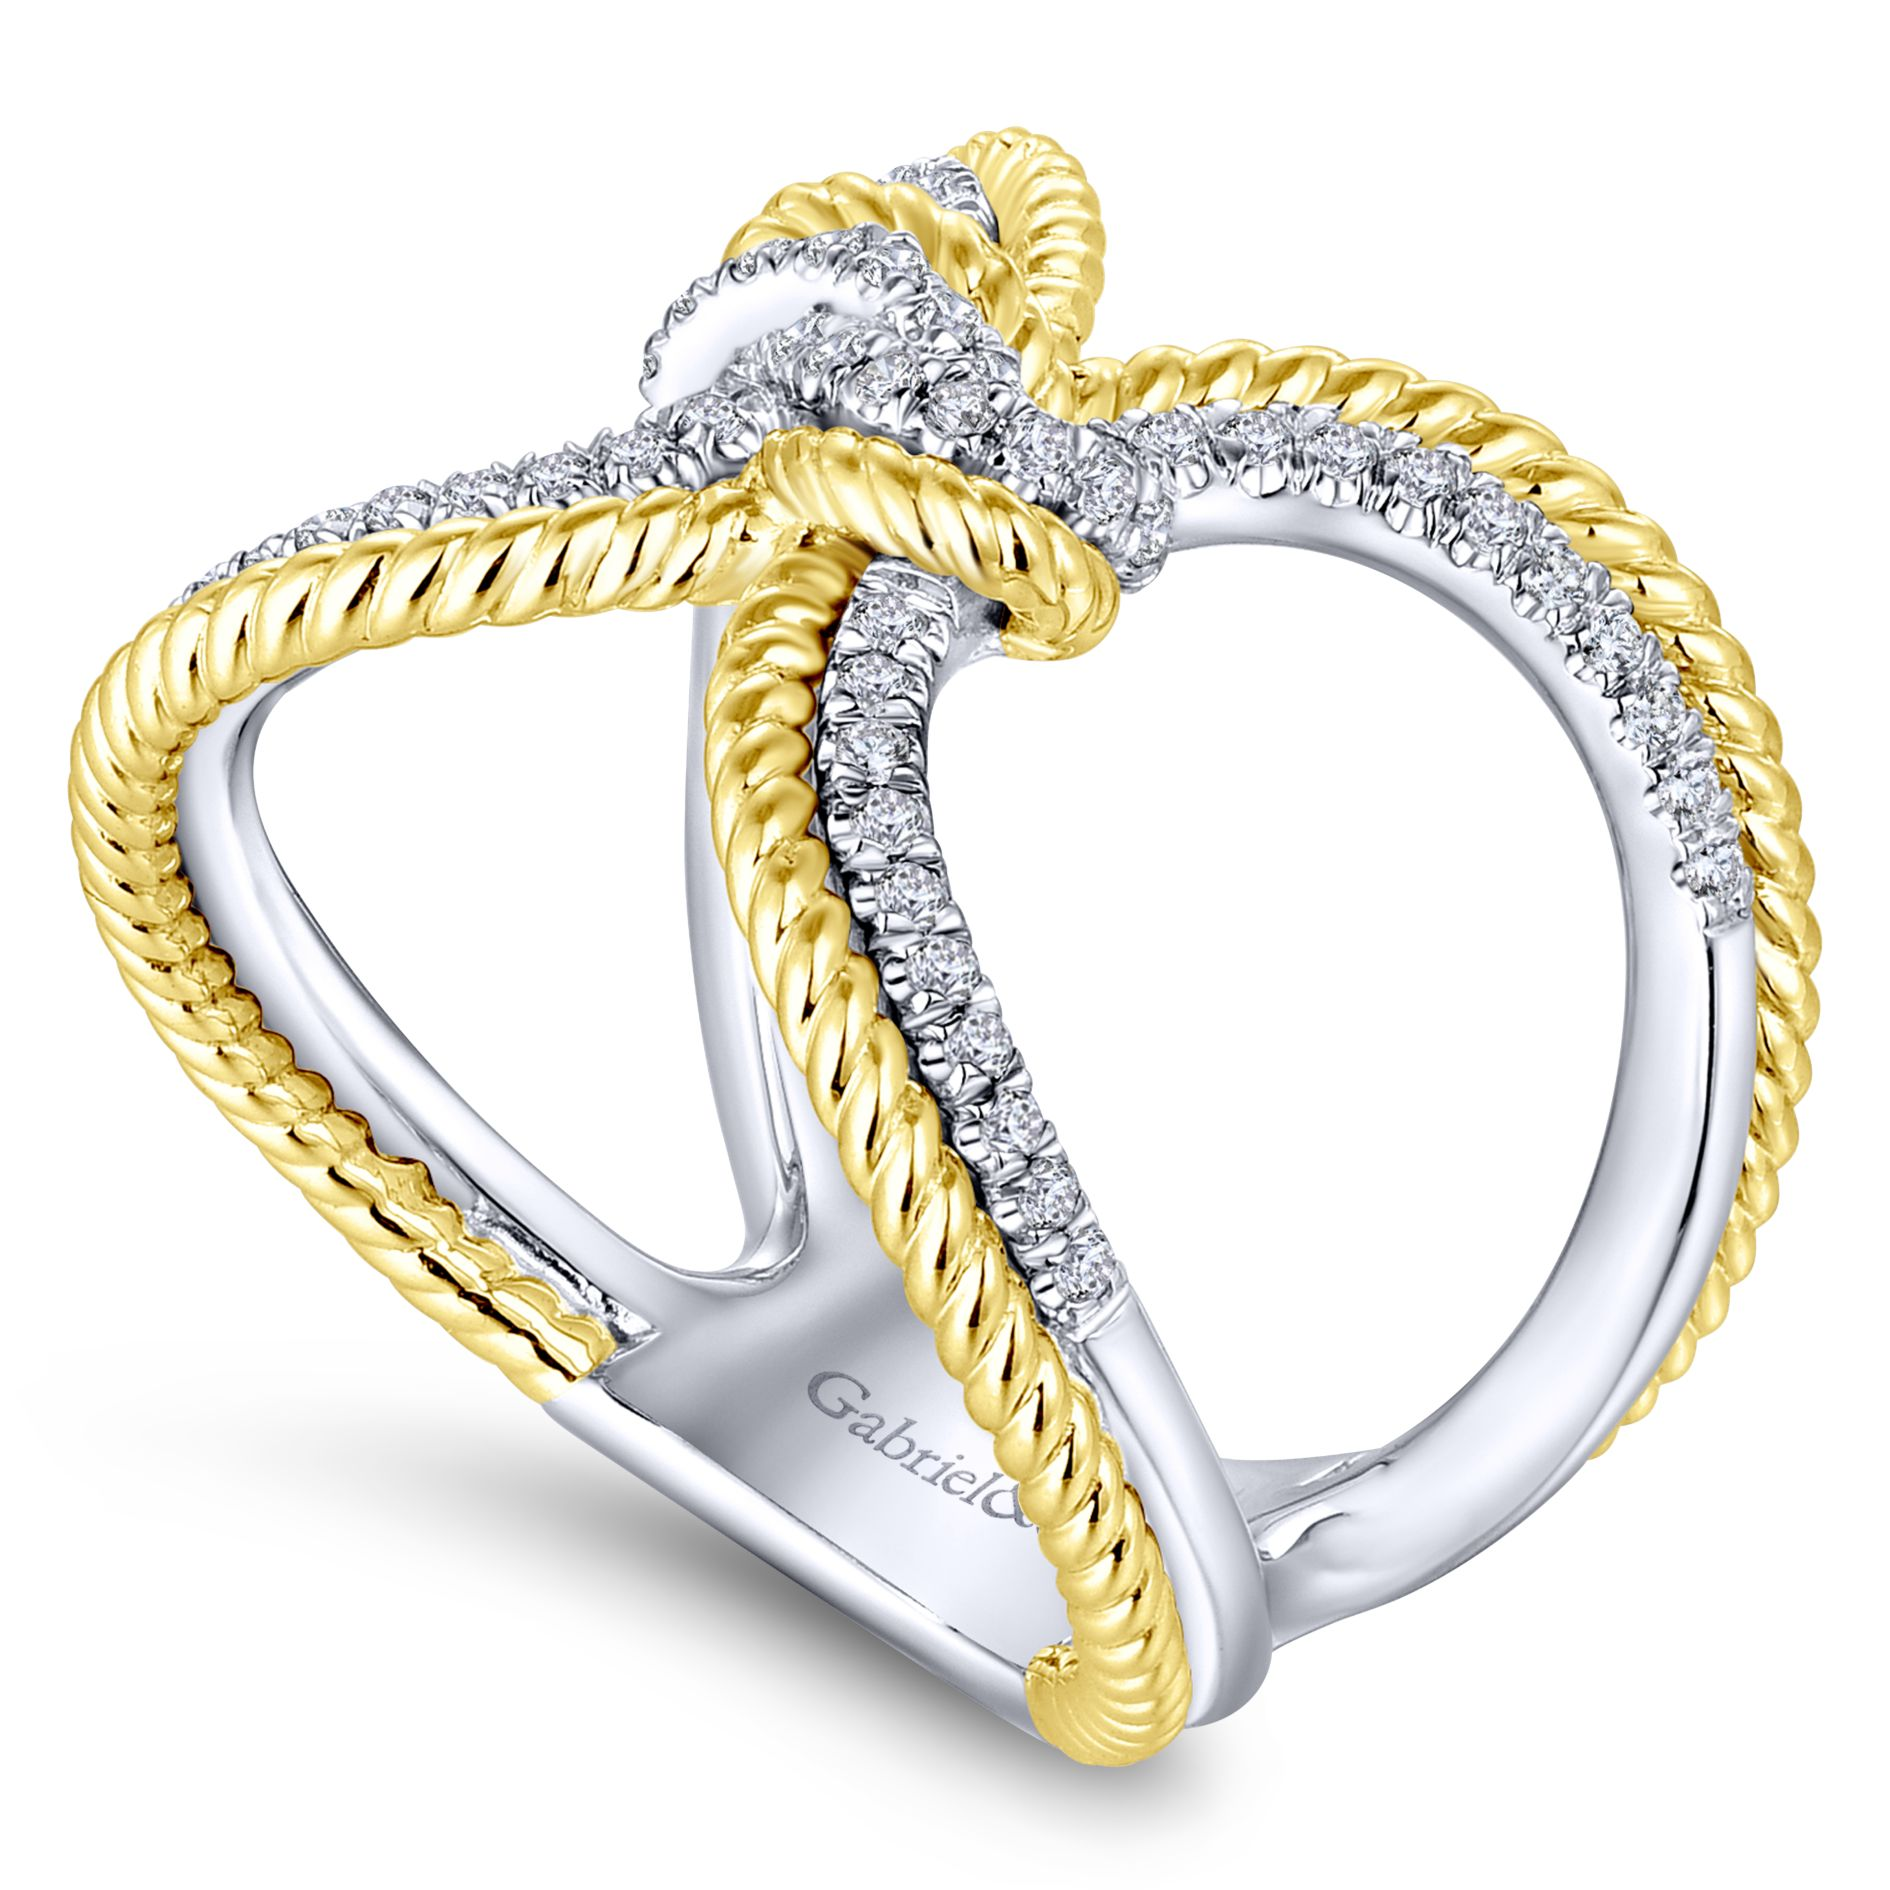 Rings - YELLOW/WHITE GOLD TWISTED DIAMOND LADIES RING - image #3